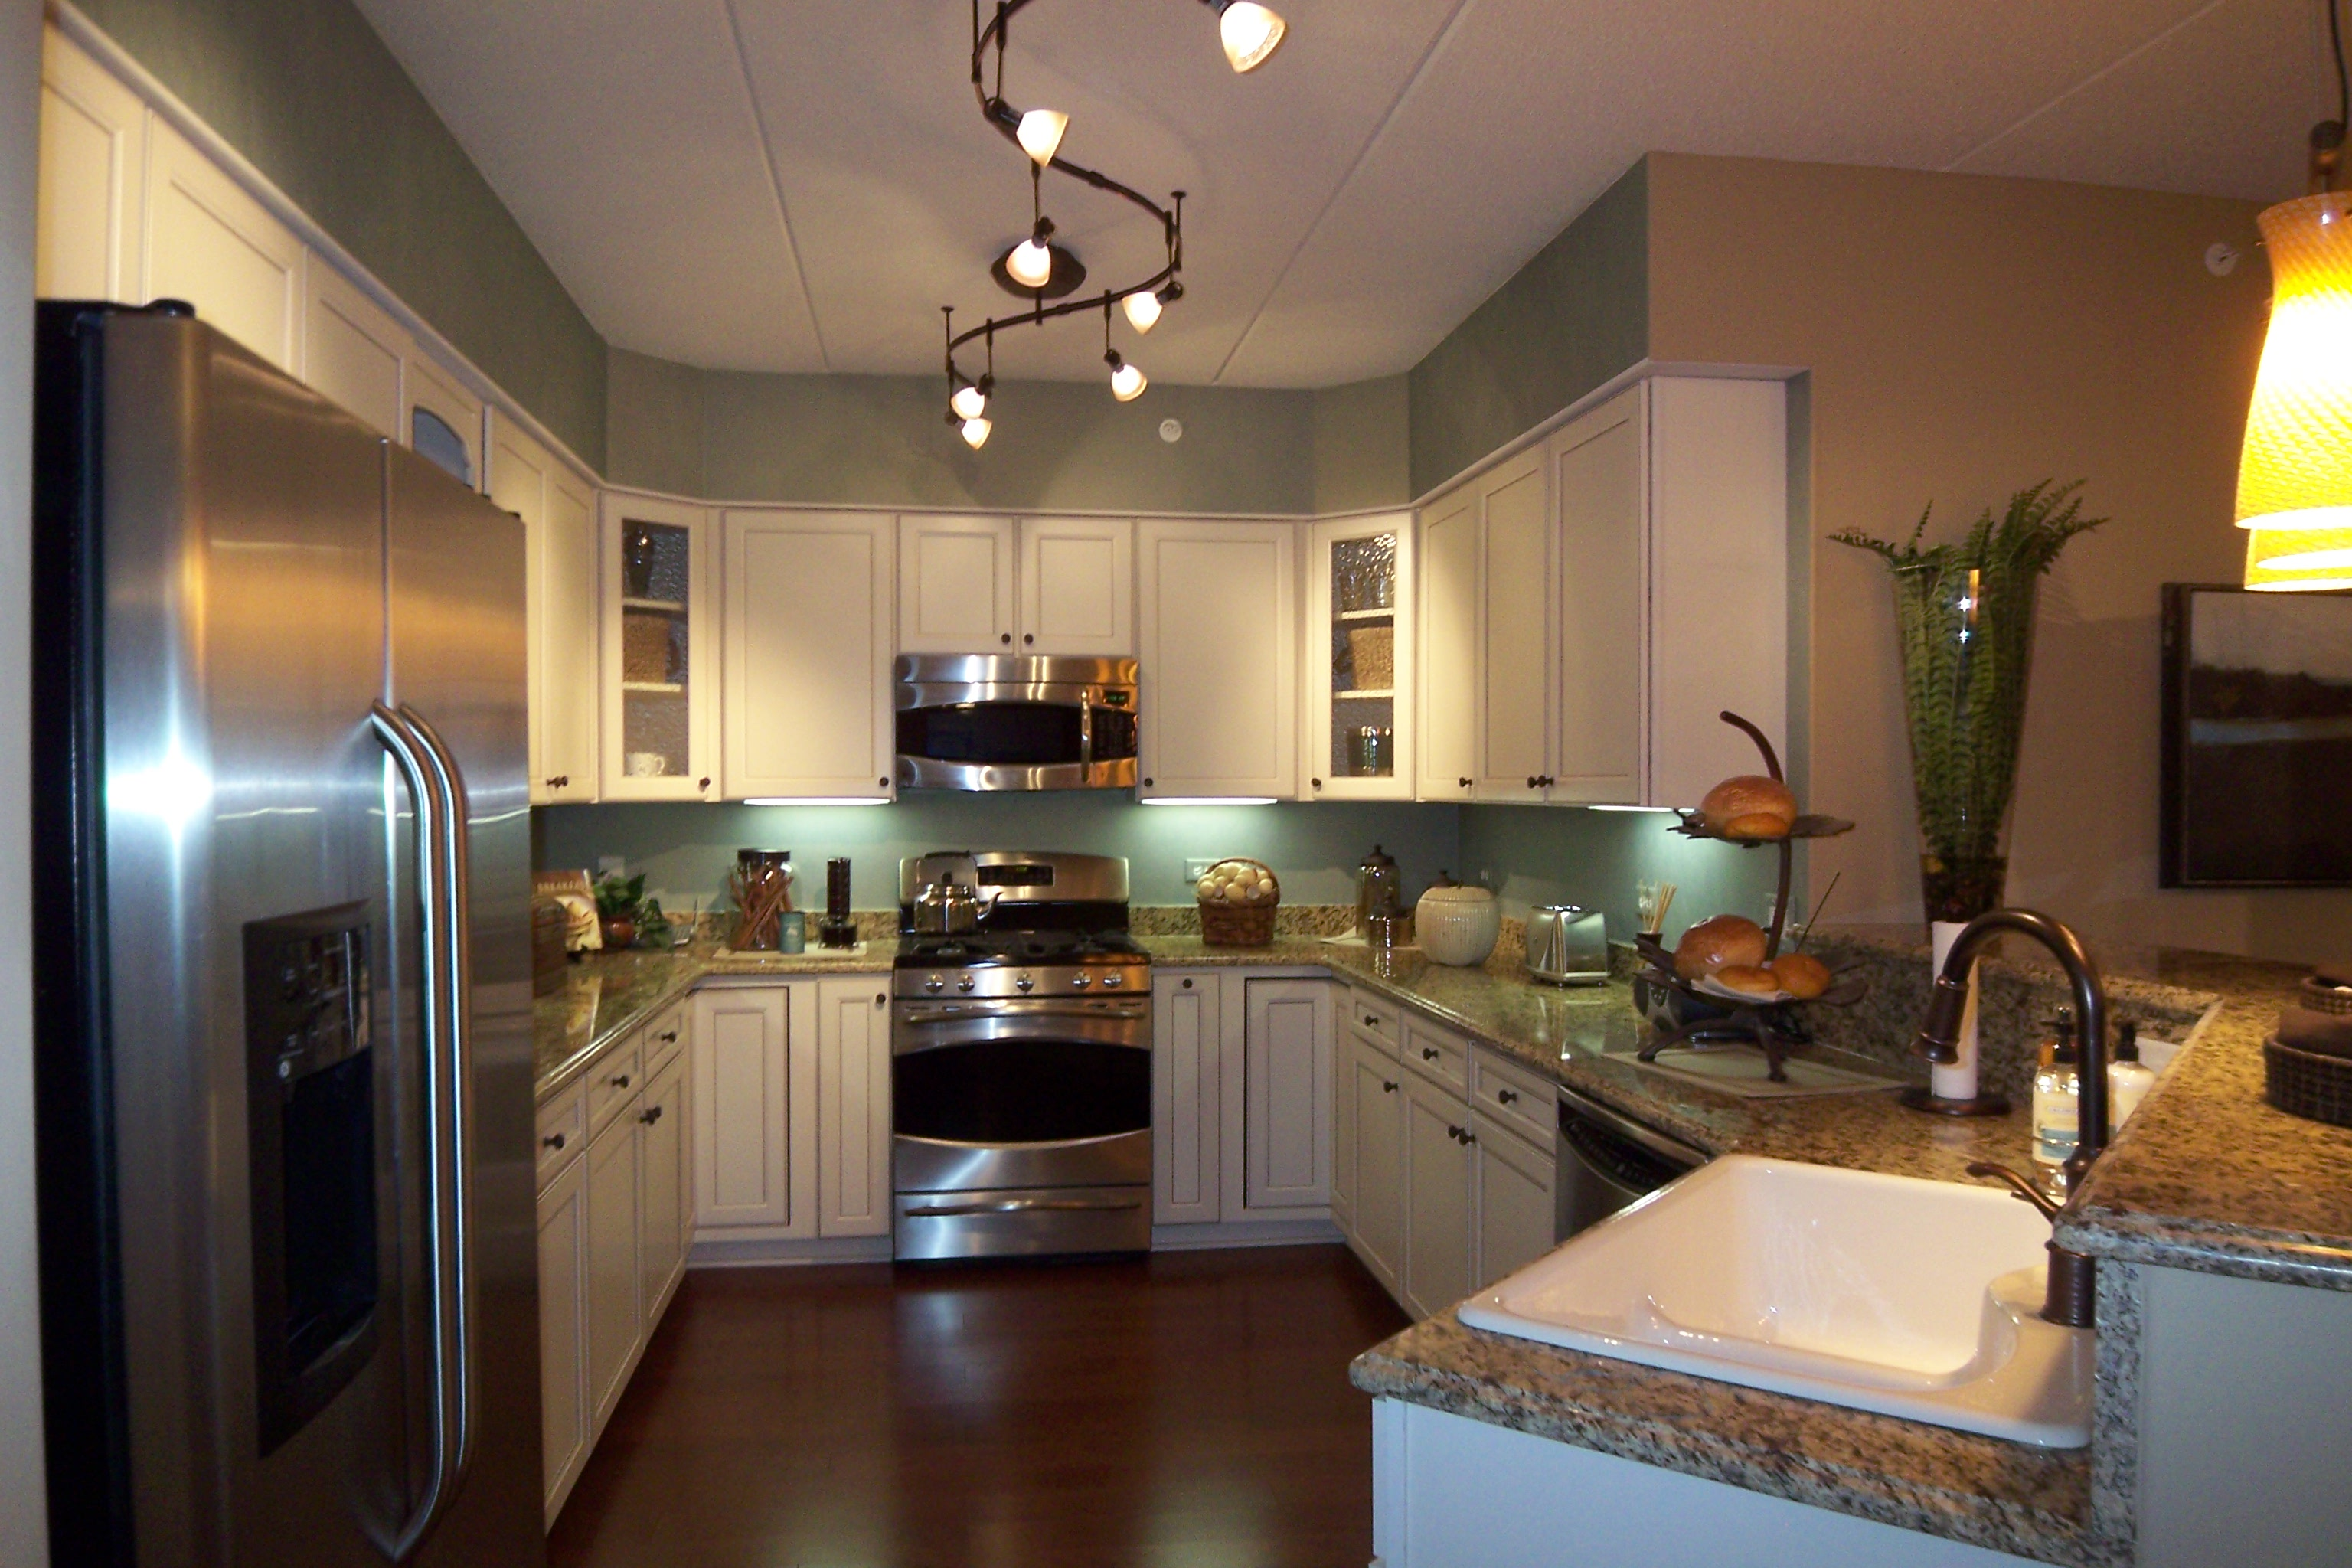 ... kitchen ceiling light fixtures ideas with kitchen ceiling lights top 10 kitchen KOCCTIV